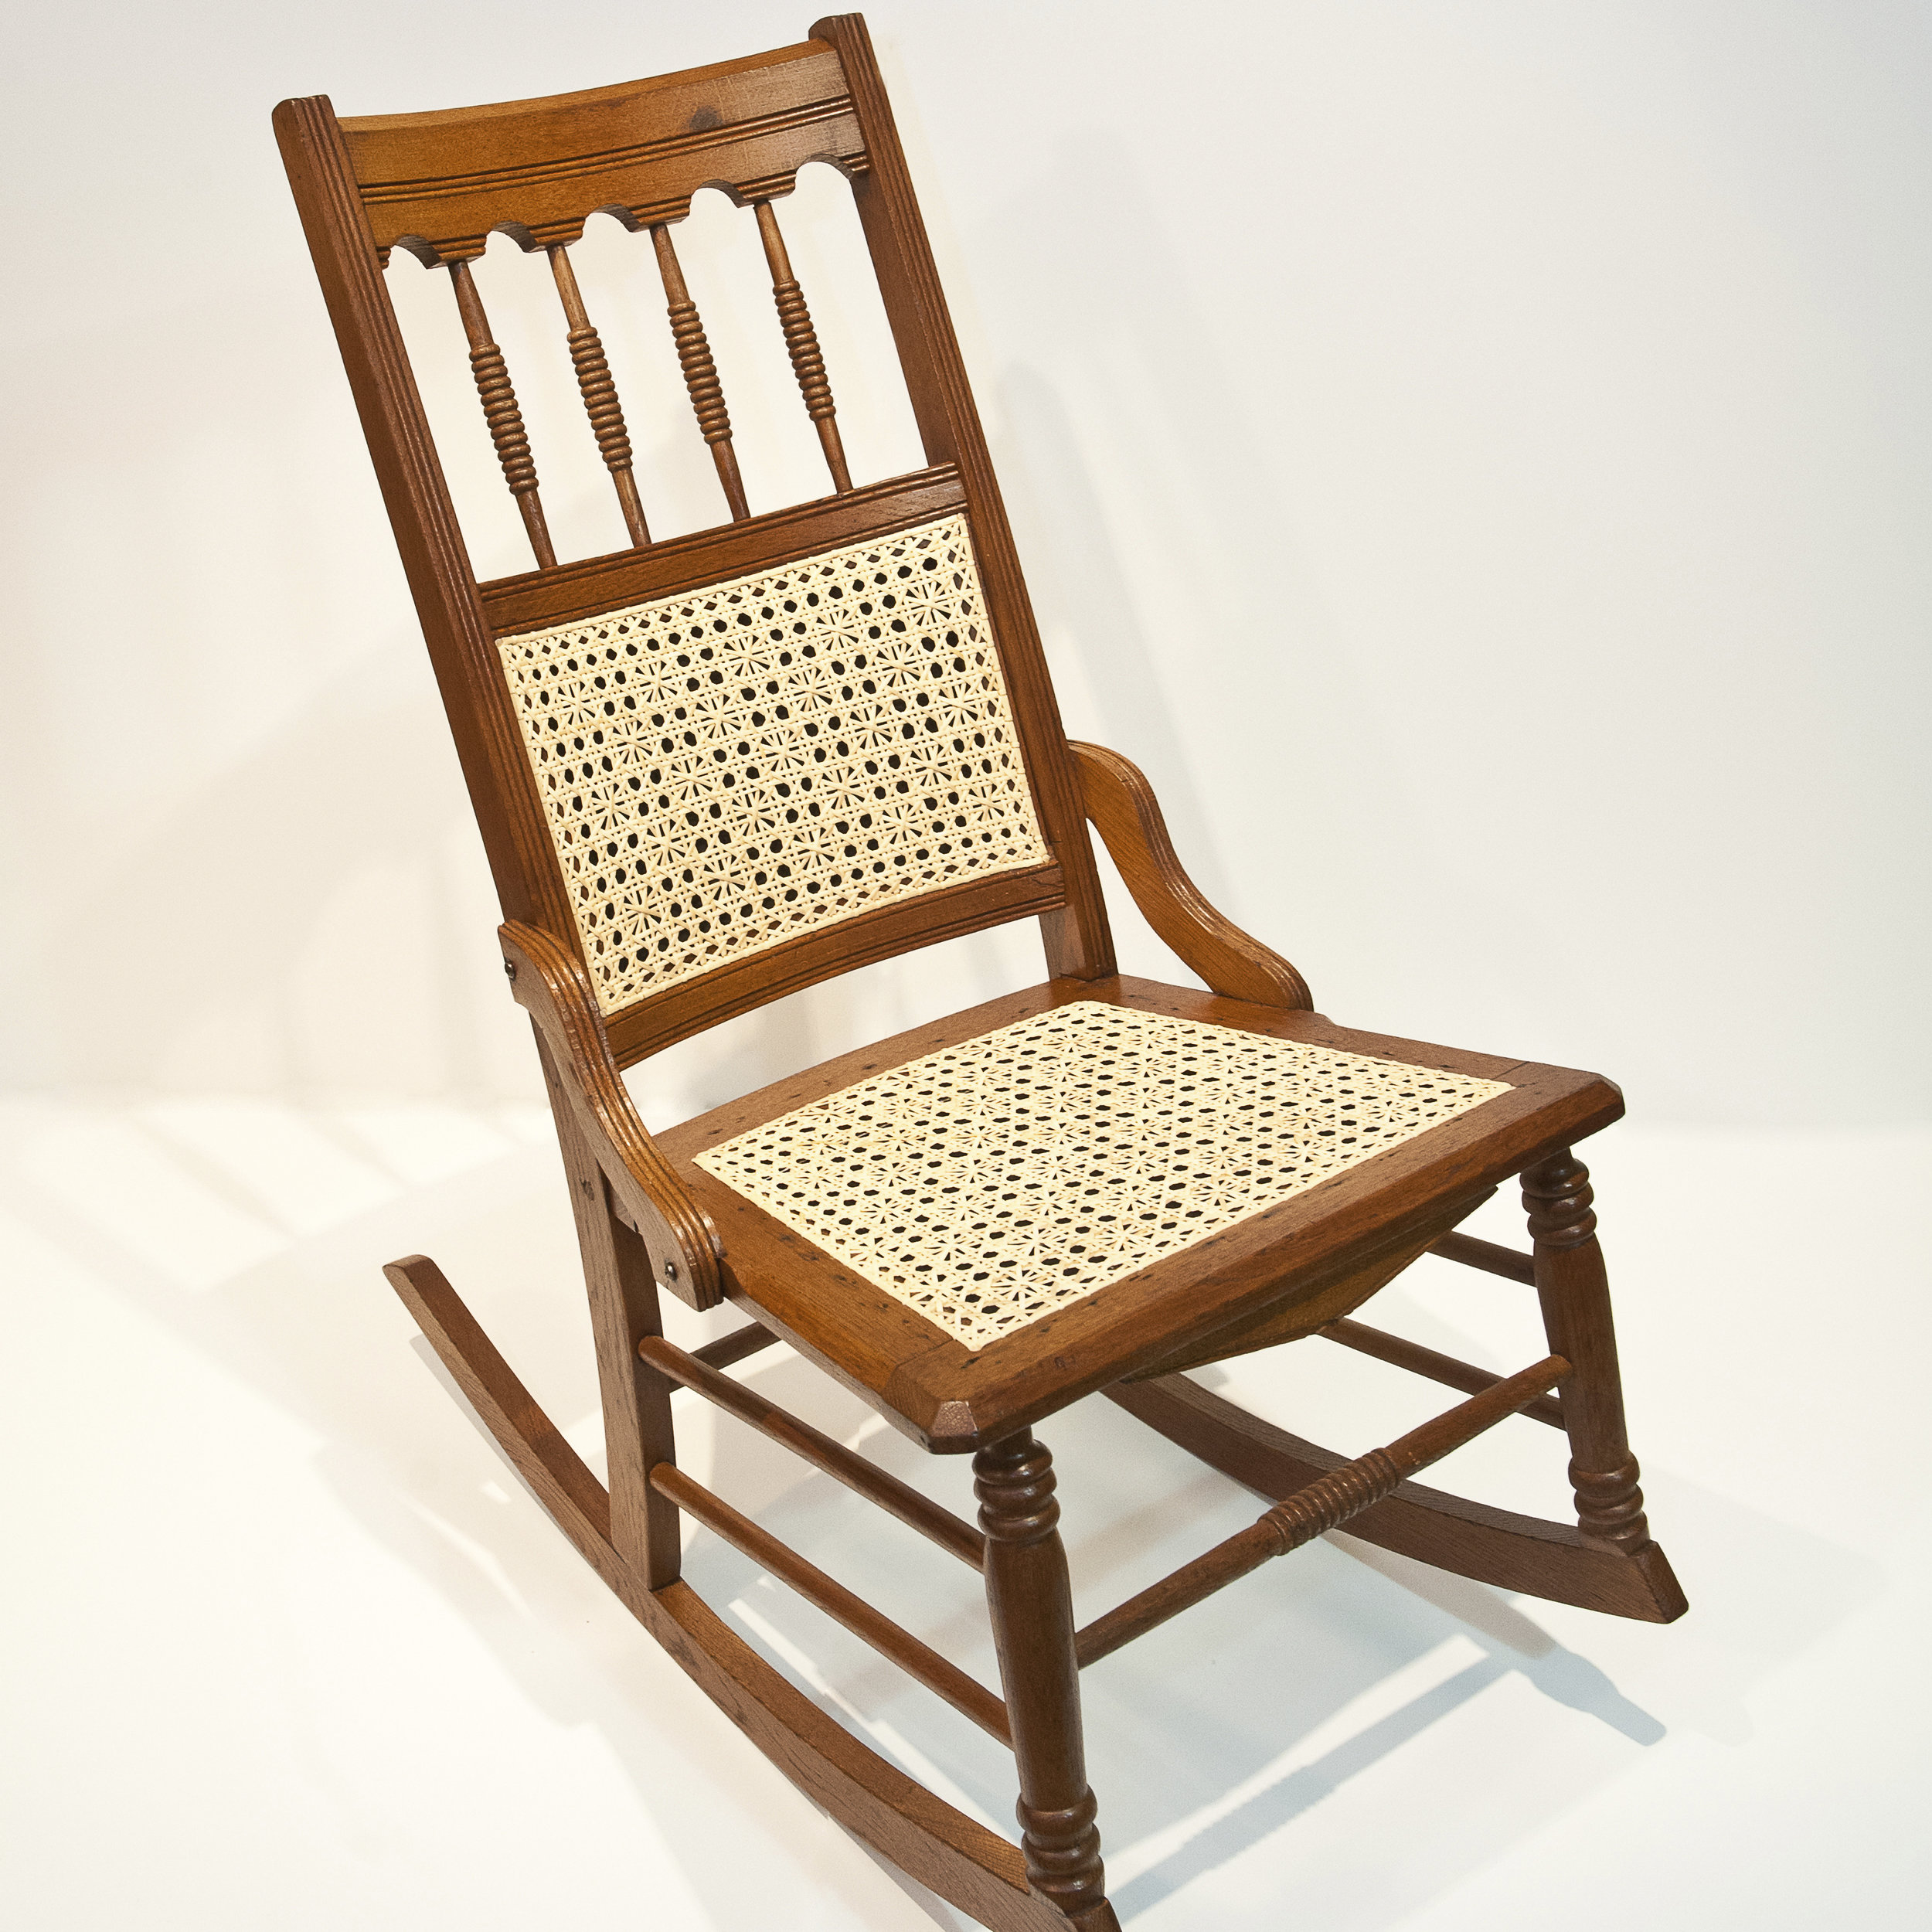 Silver River Center for Chair Caning